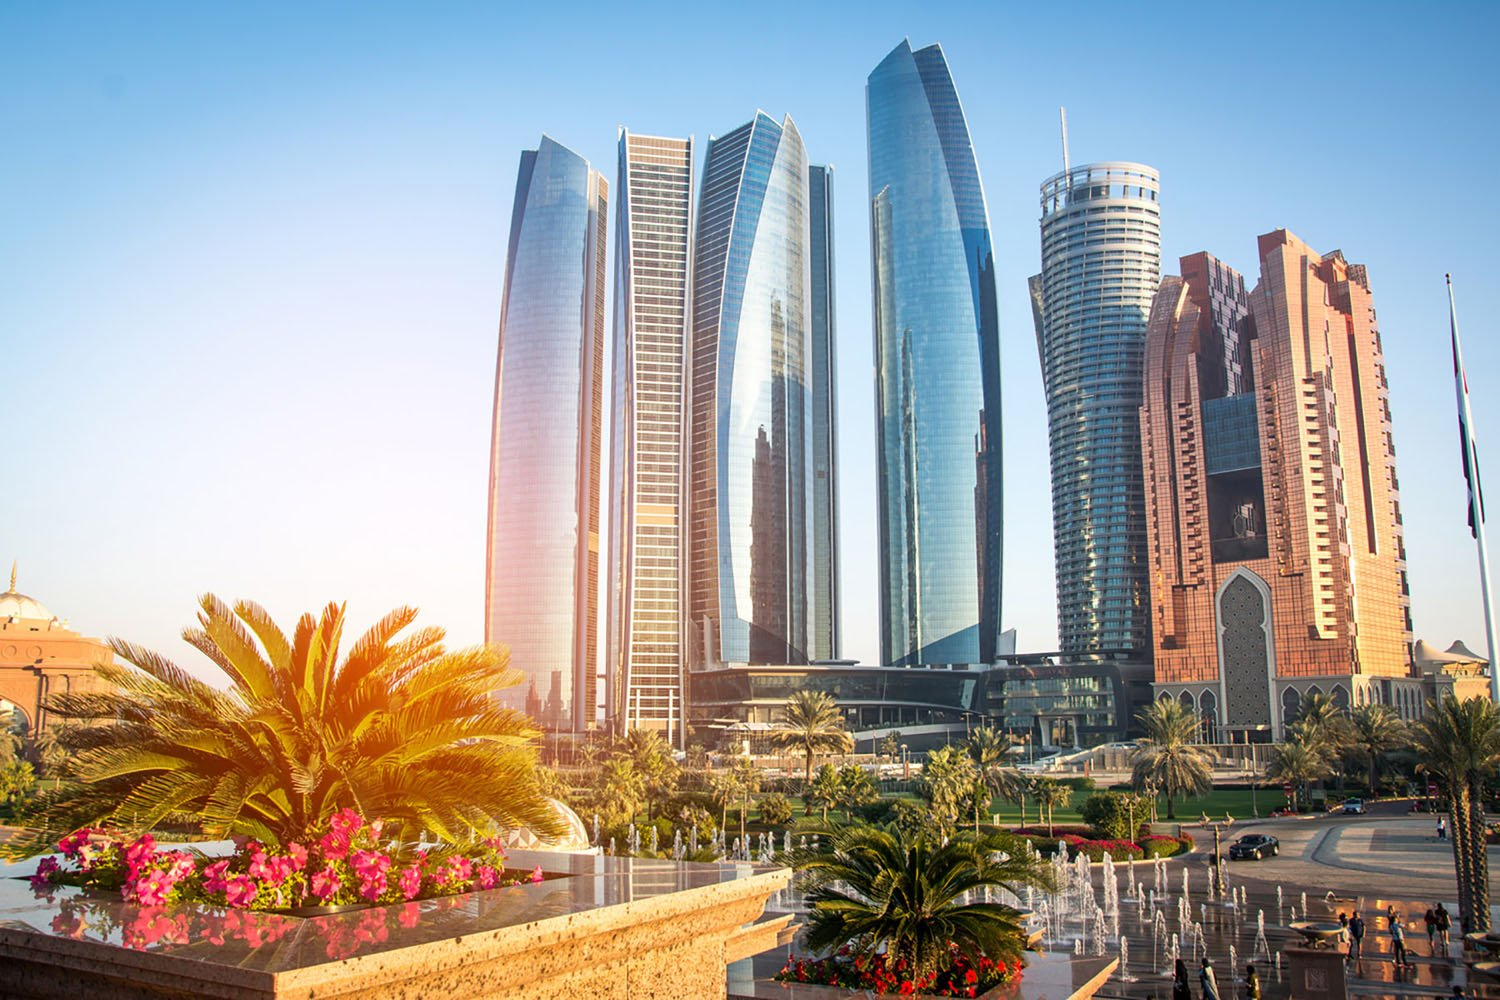 The Etihad Towers in Abu Dhabi